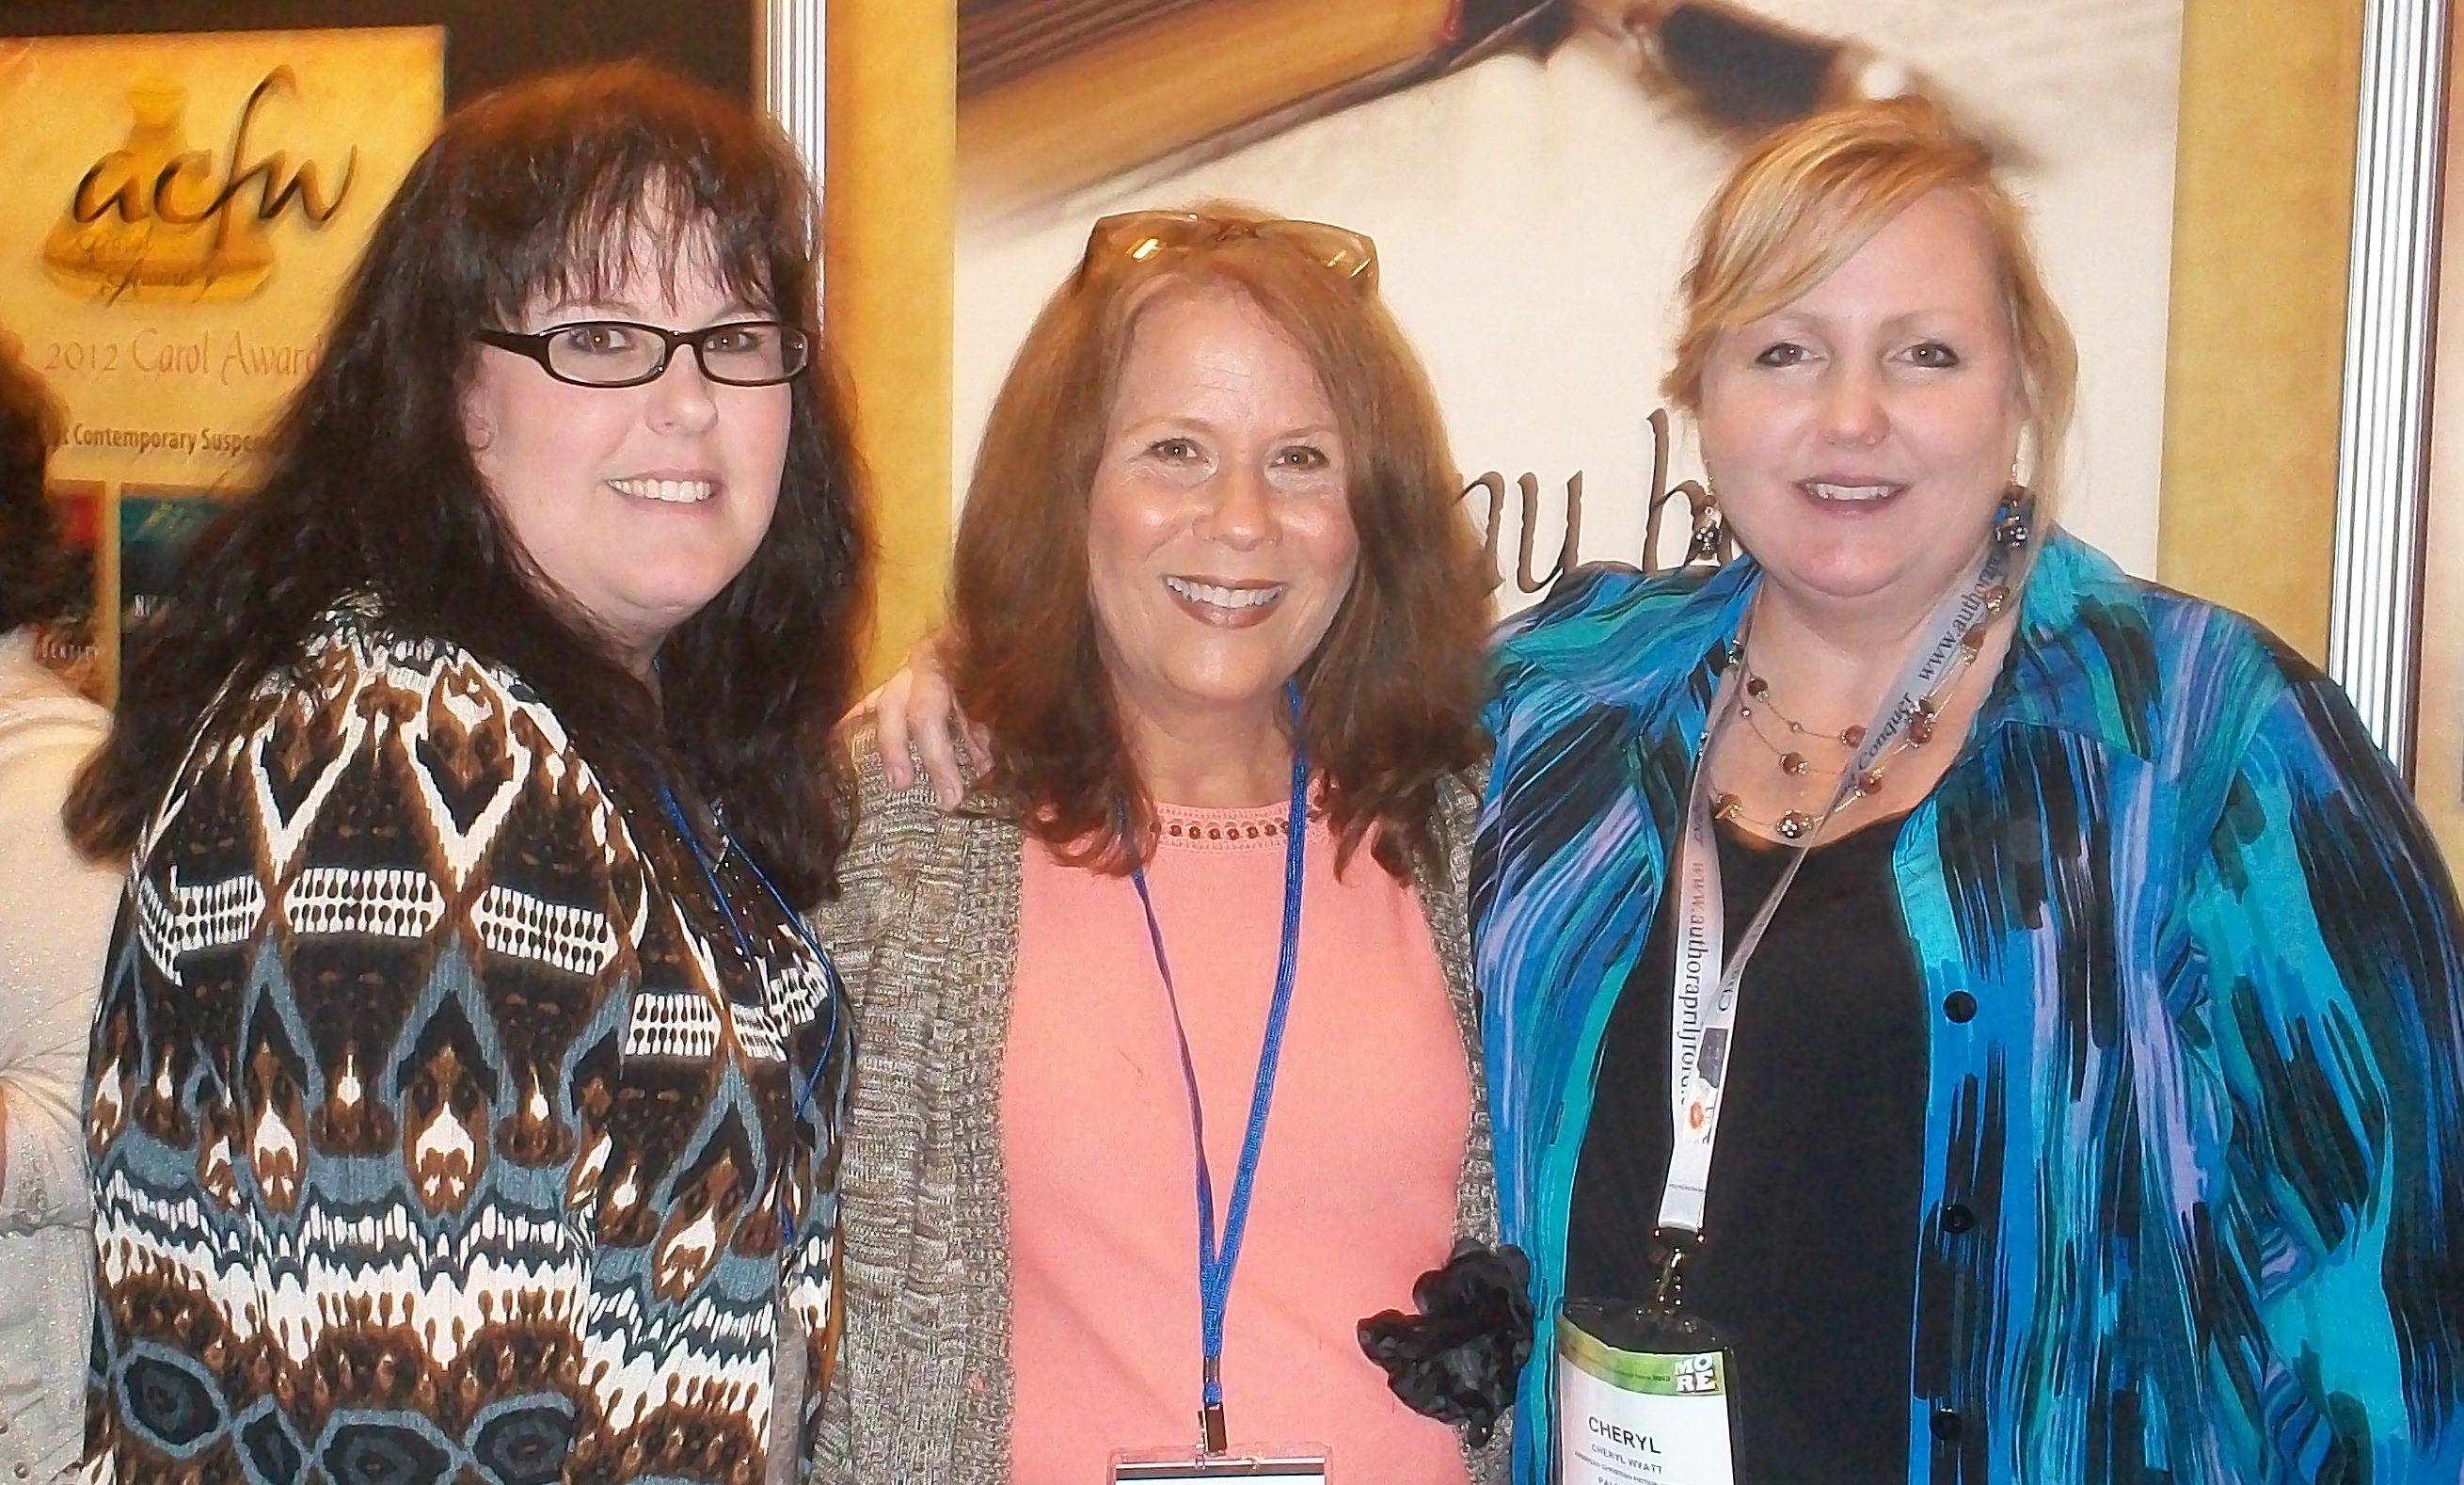 With authors Robin Miller and Cheryl Wyatt